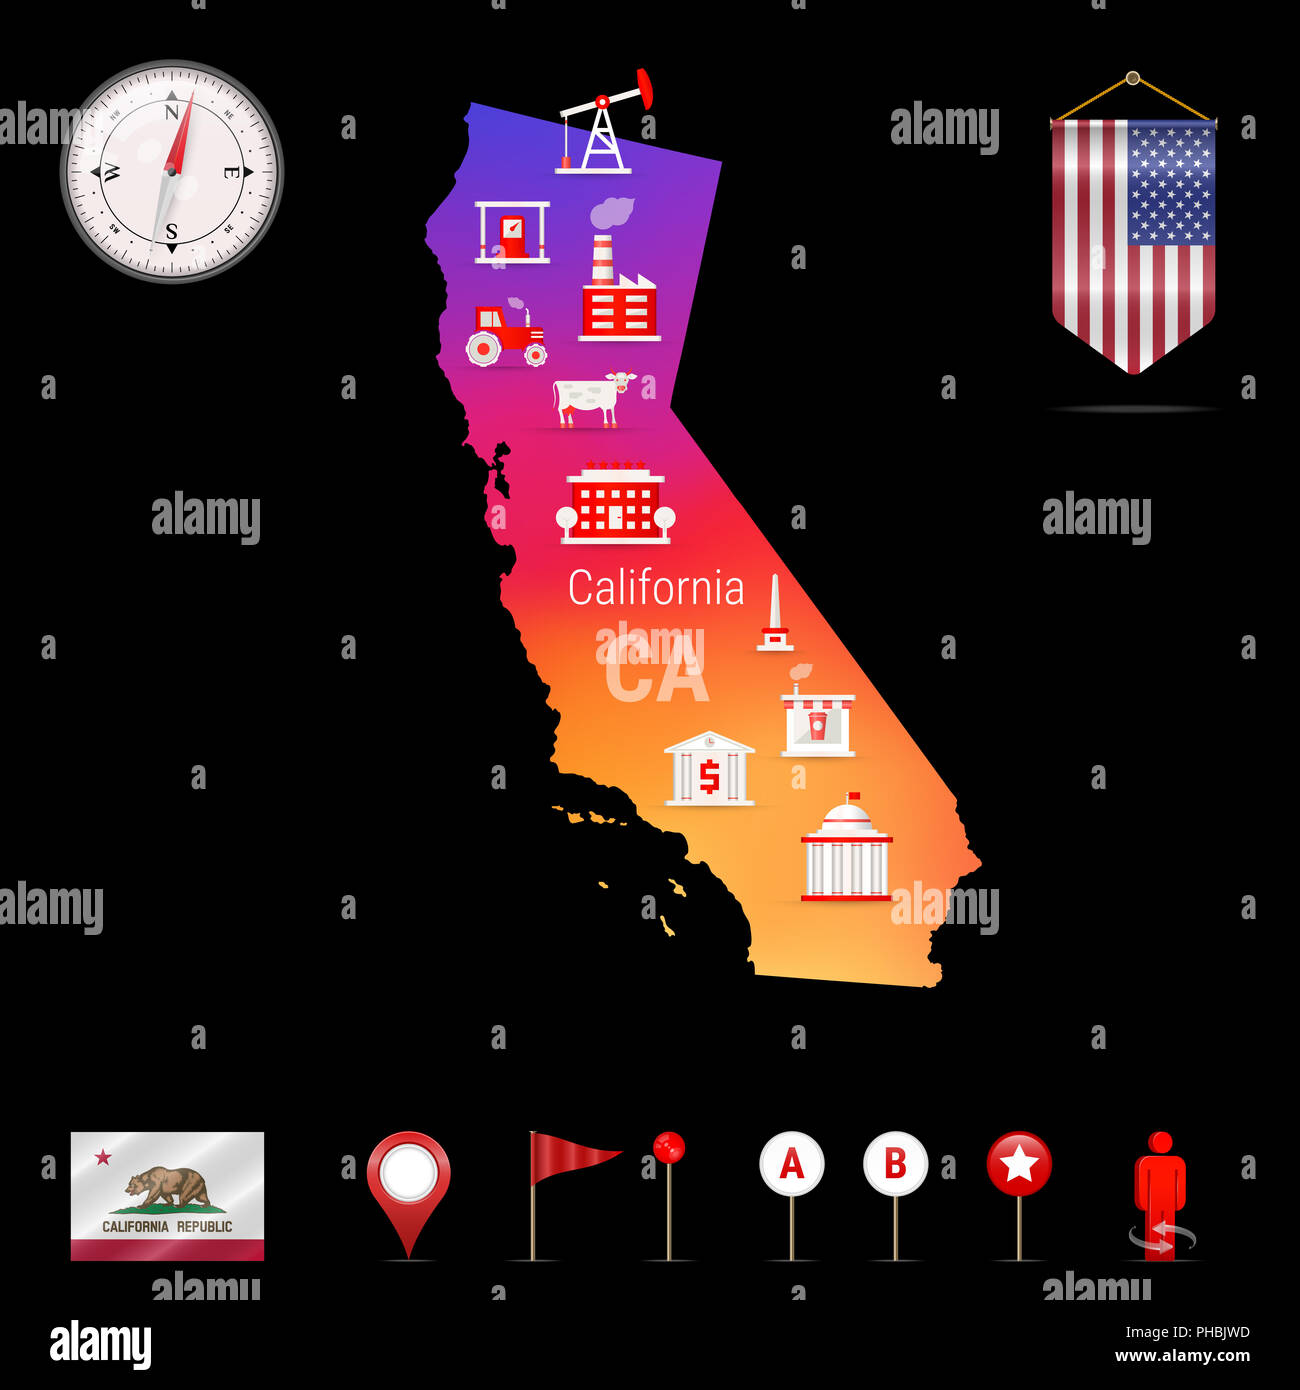 California Map Icon.California Map Night View Compass Icon Map Navigation Elements